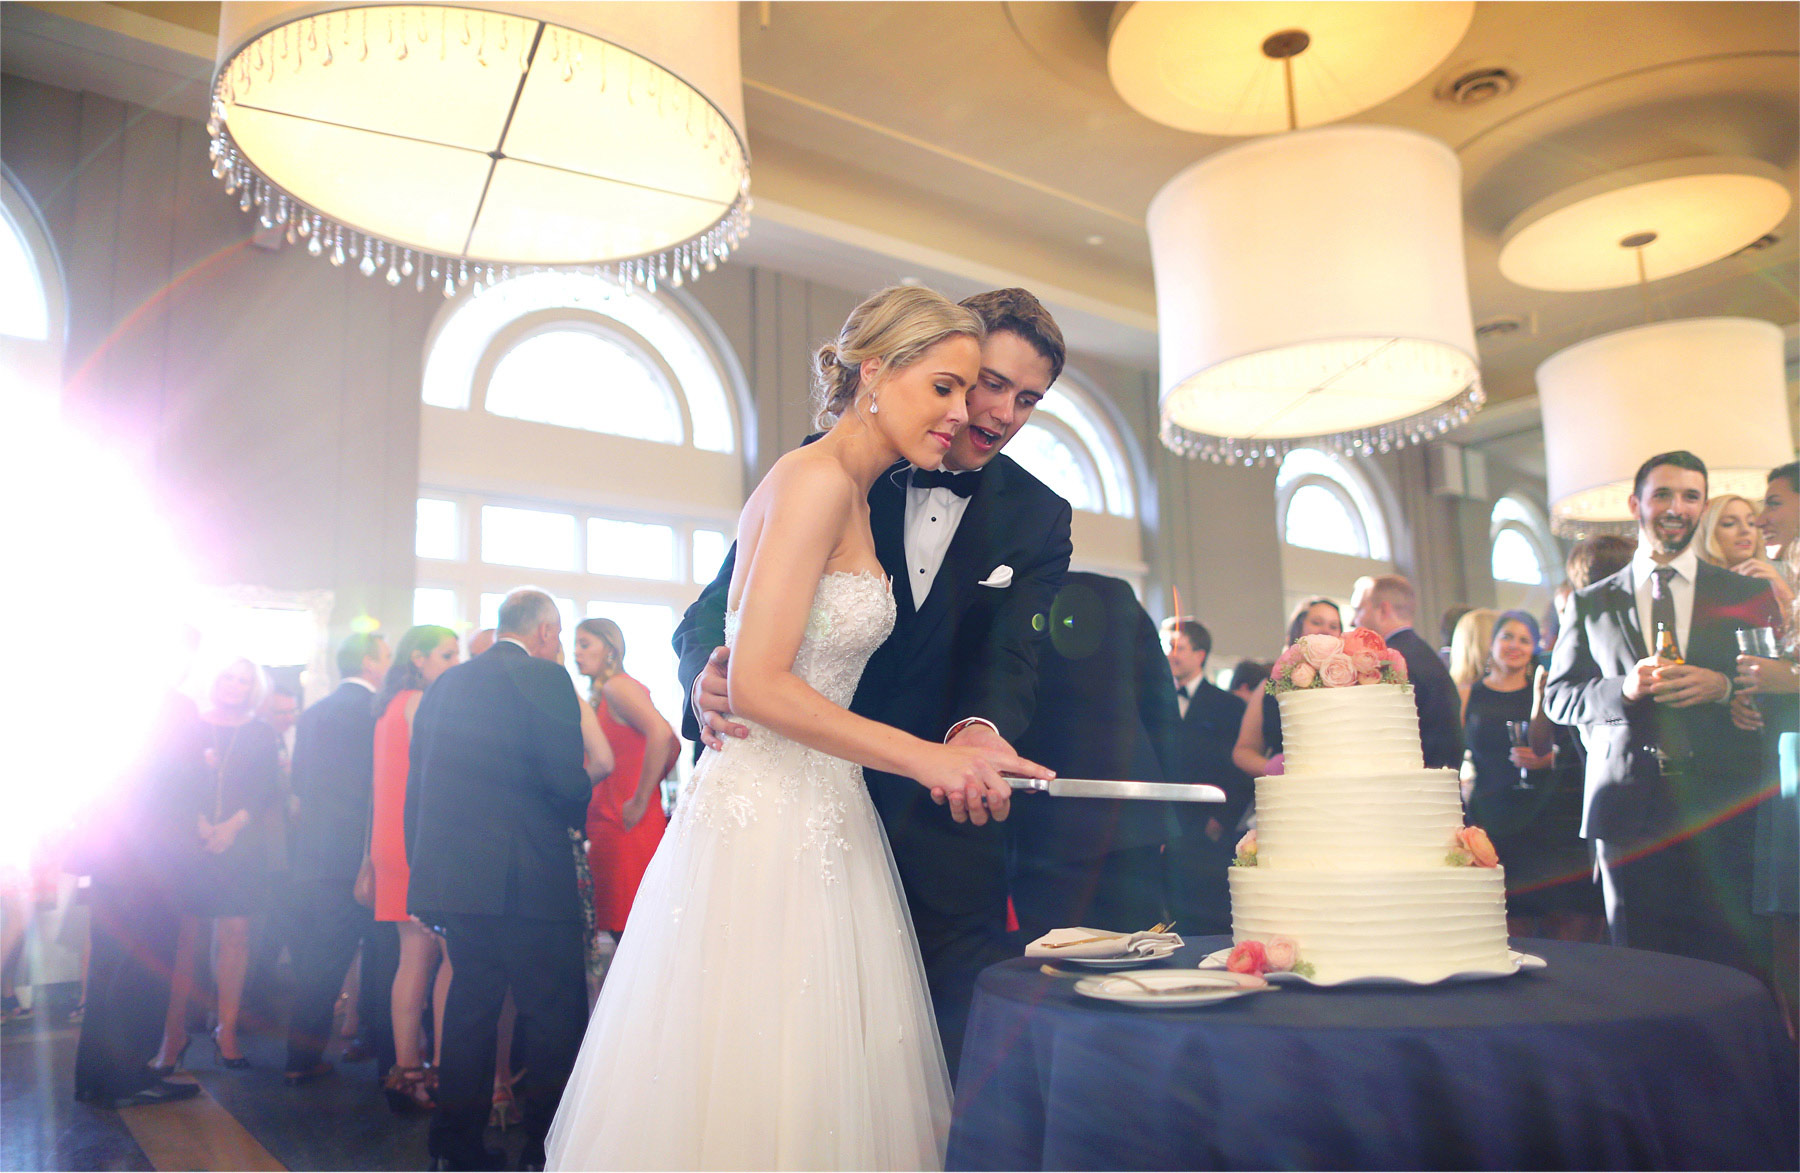 24-Minneapolis-Minnesota-Wedding-Photographer-by-Andrew-Vick-Photography-Summer--Calhoun-Beach-Club-Reception-Bride-Groom-Cake-Cutting-Guests-Michelle-and-Kevin.jpg